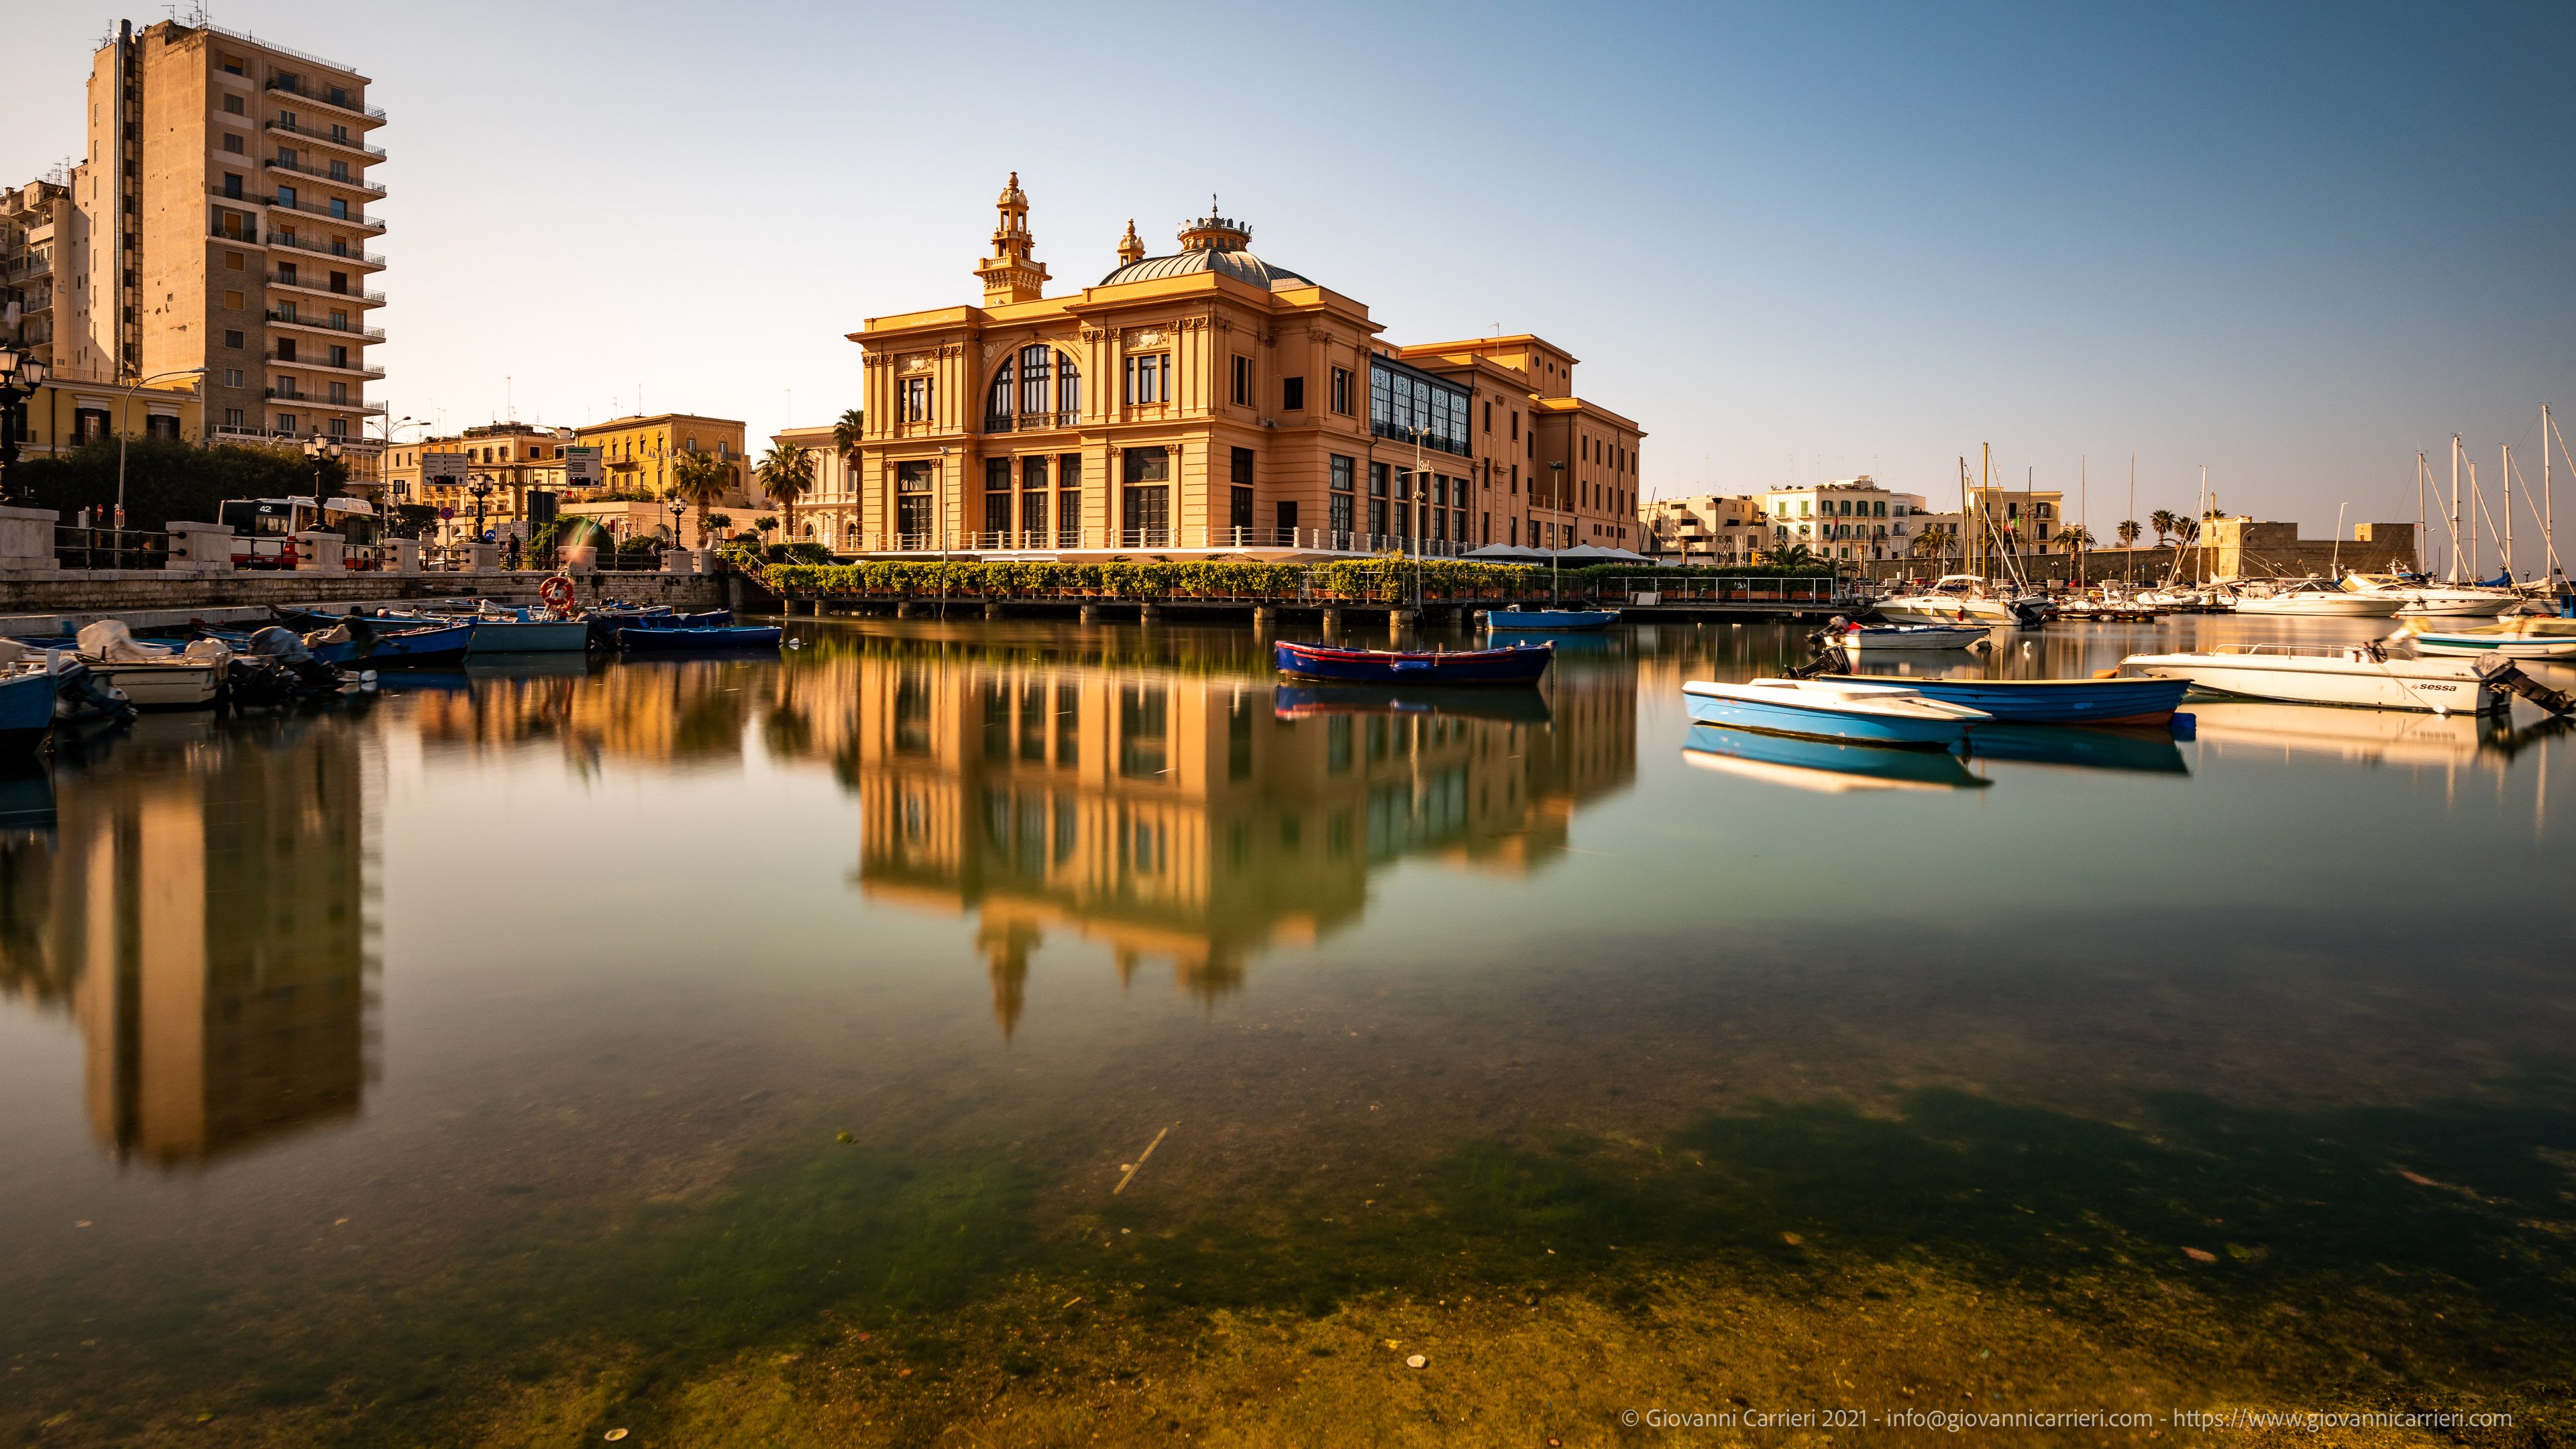 Bari, The Margherita Theater The Margherita theater and the arrival of spring in Bari